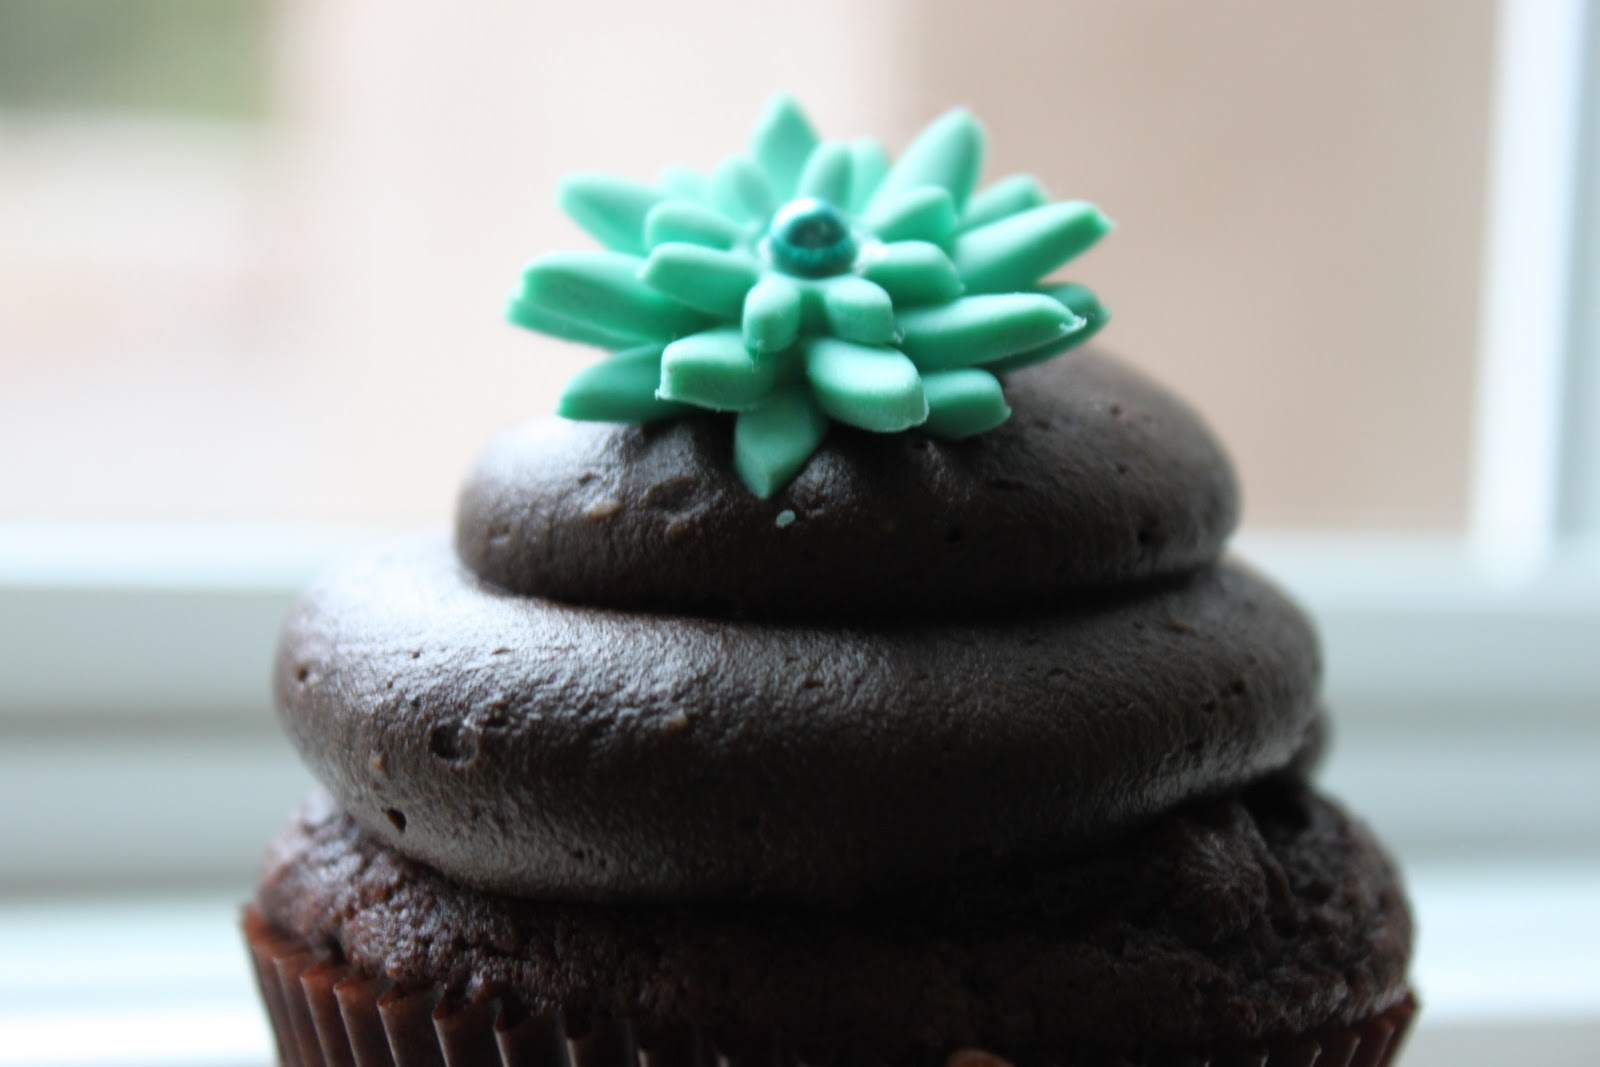 Teal Cupcakes with Frosting